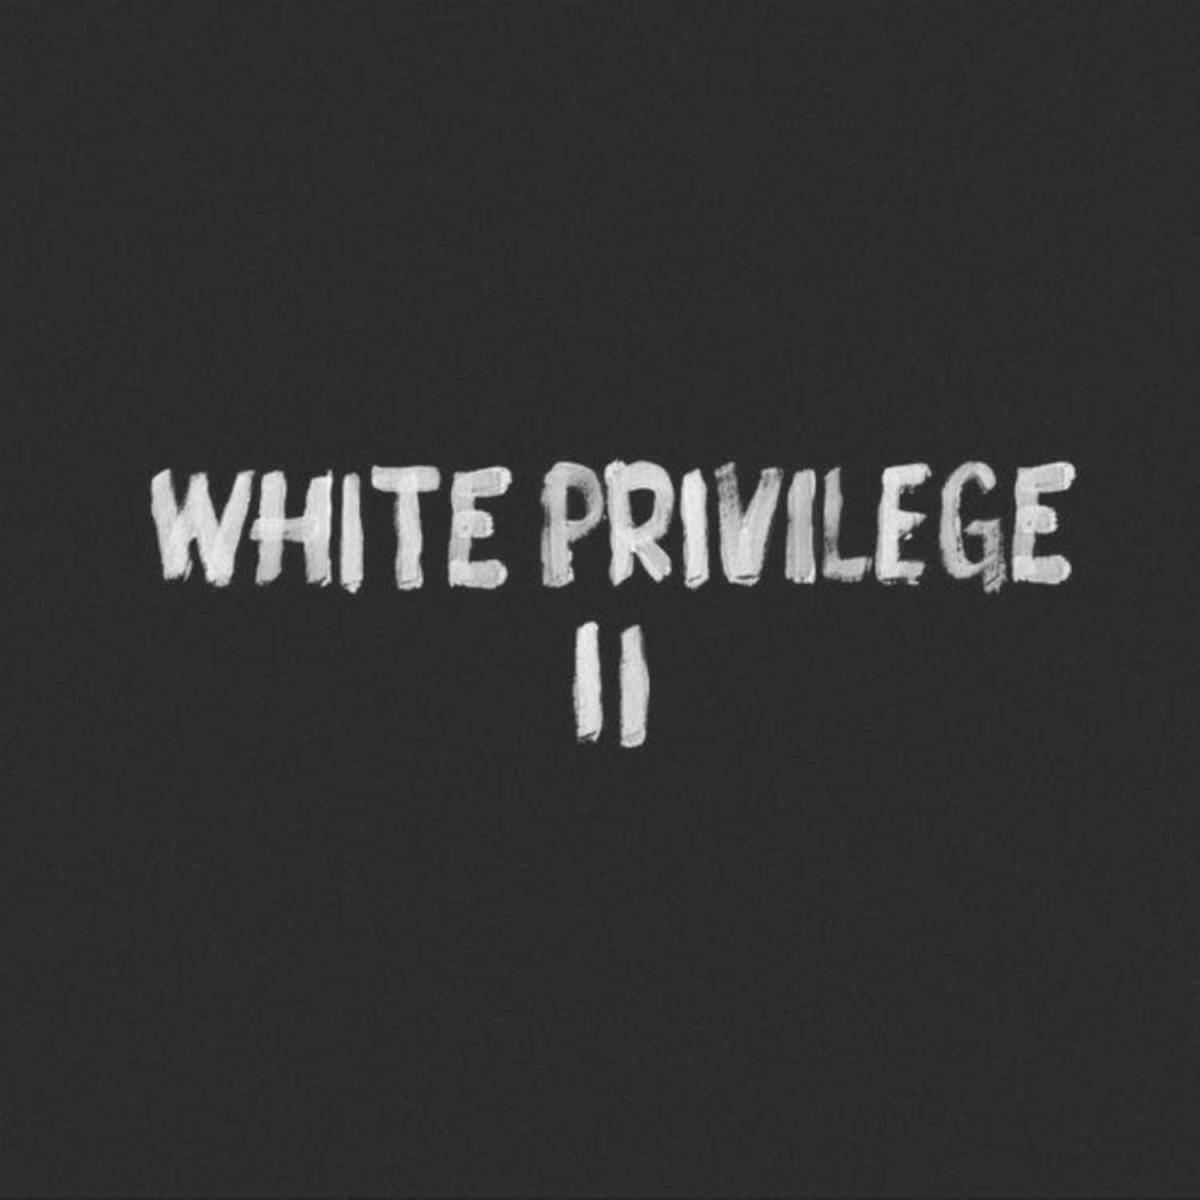 macklemore white privilege white allies and black liberation ldquomacklemore white privilege 2 white allies and black liberationrdquo south seattle emerald